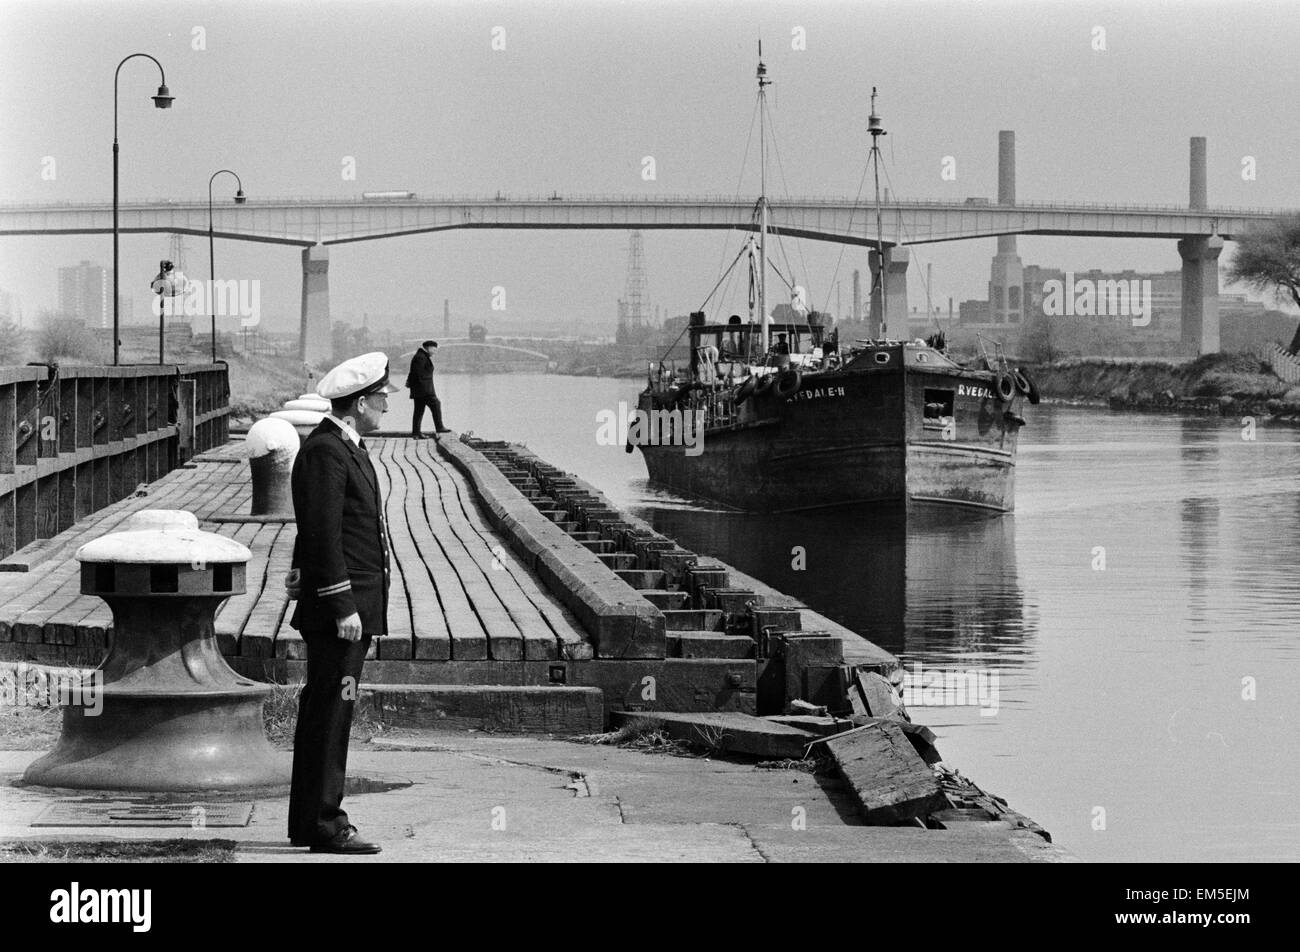 Trawler in the docks at Manchester ship canal seen through the mist June 1967 - Stock Image